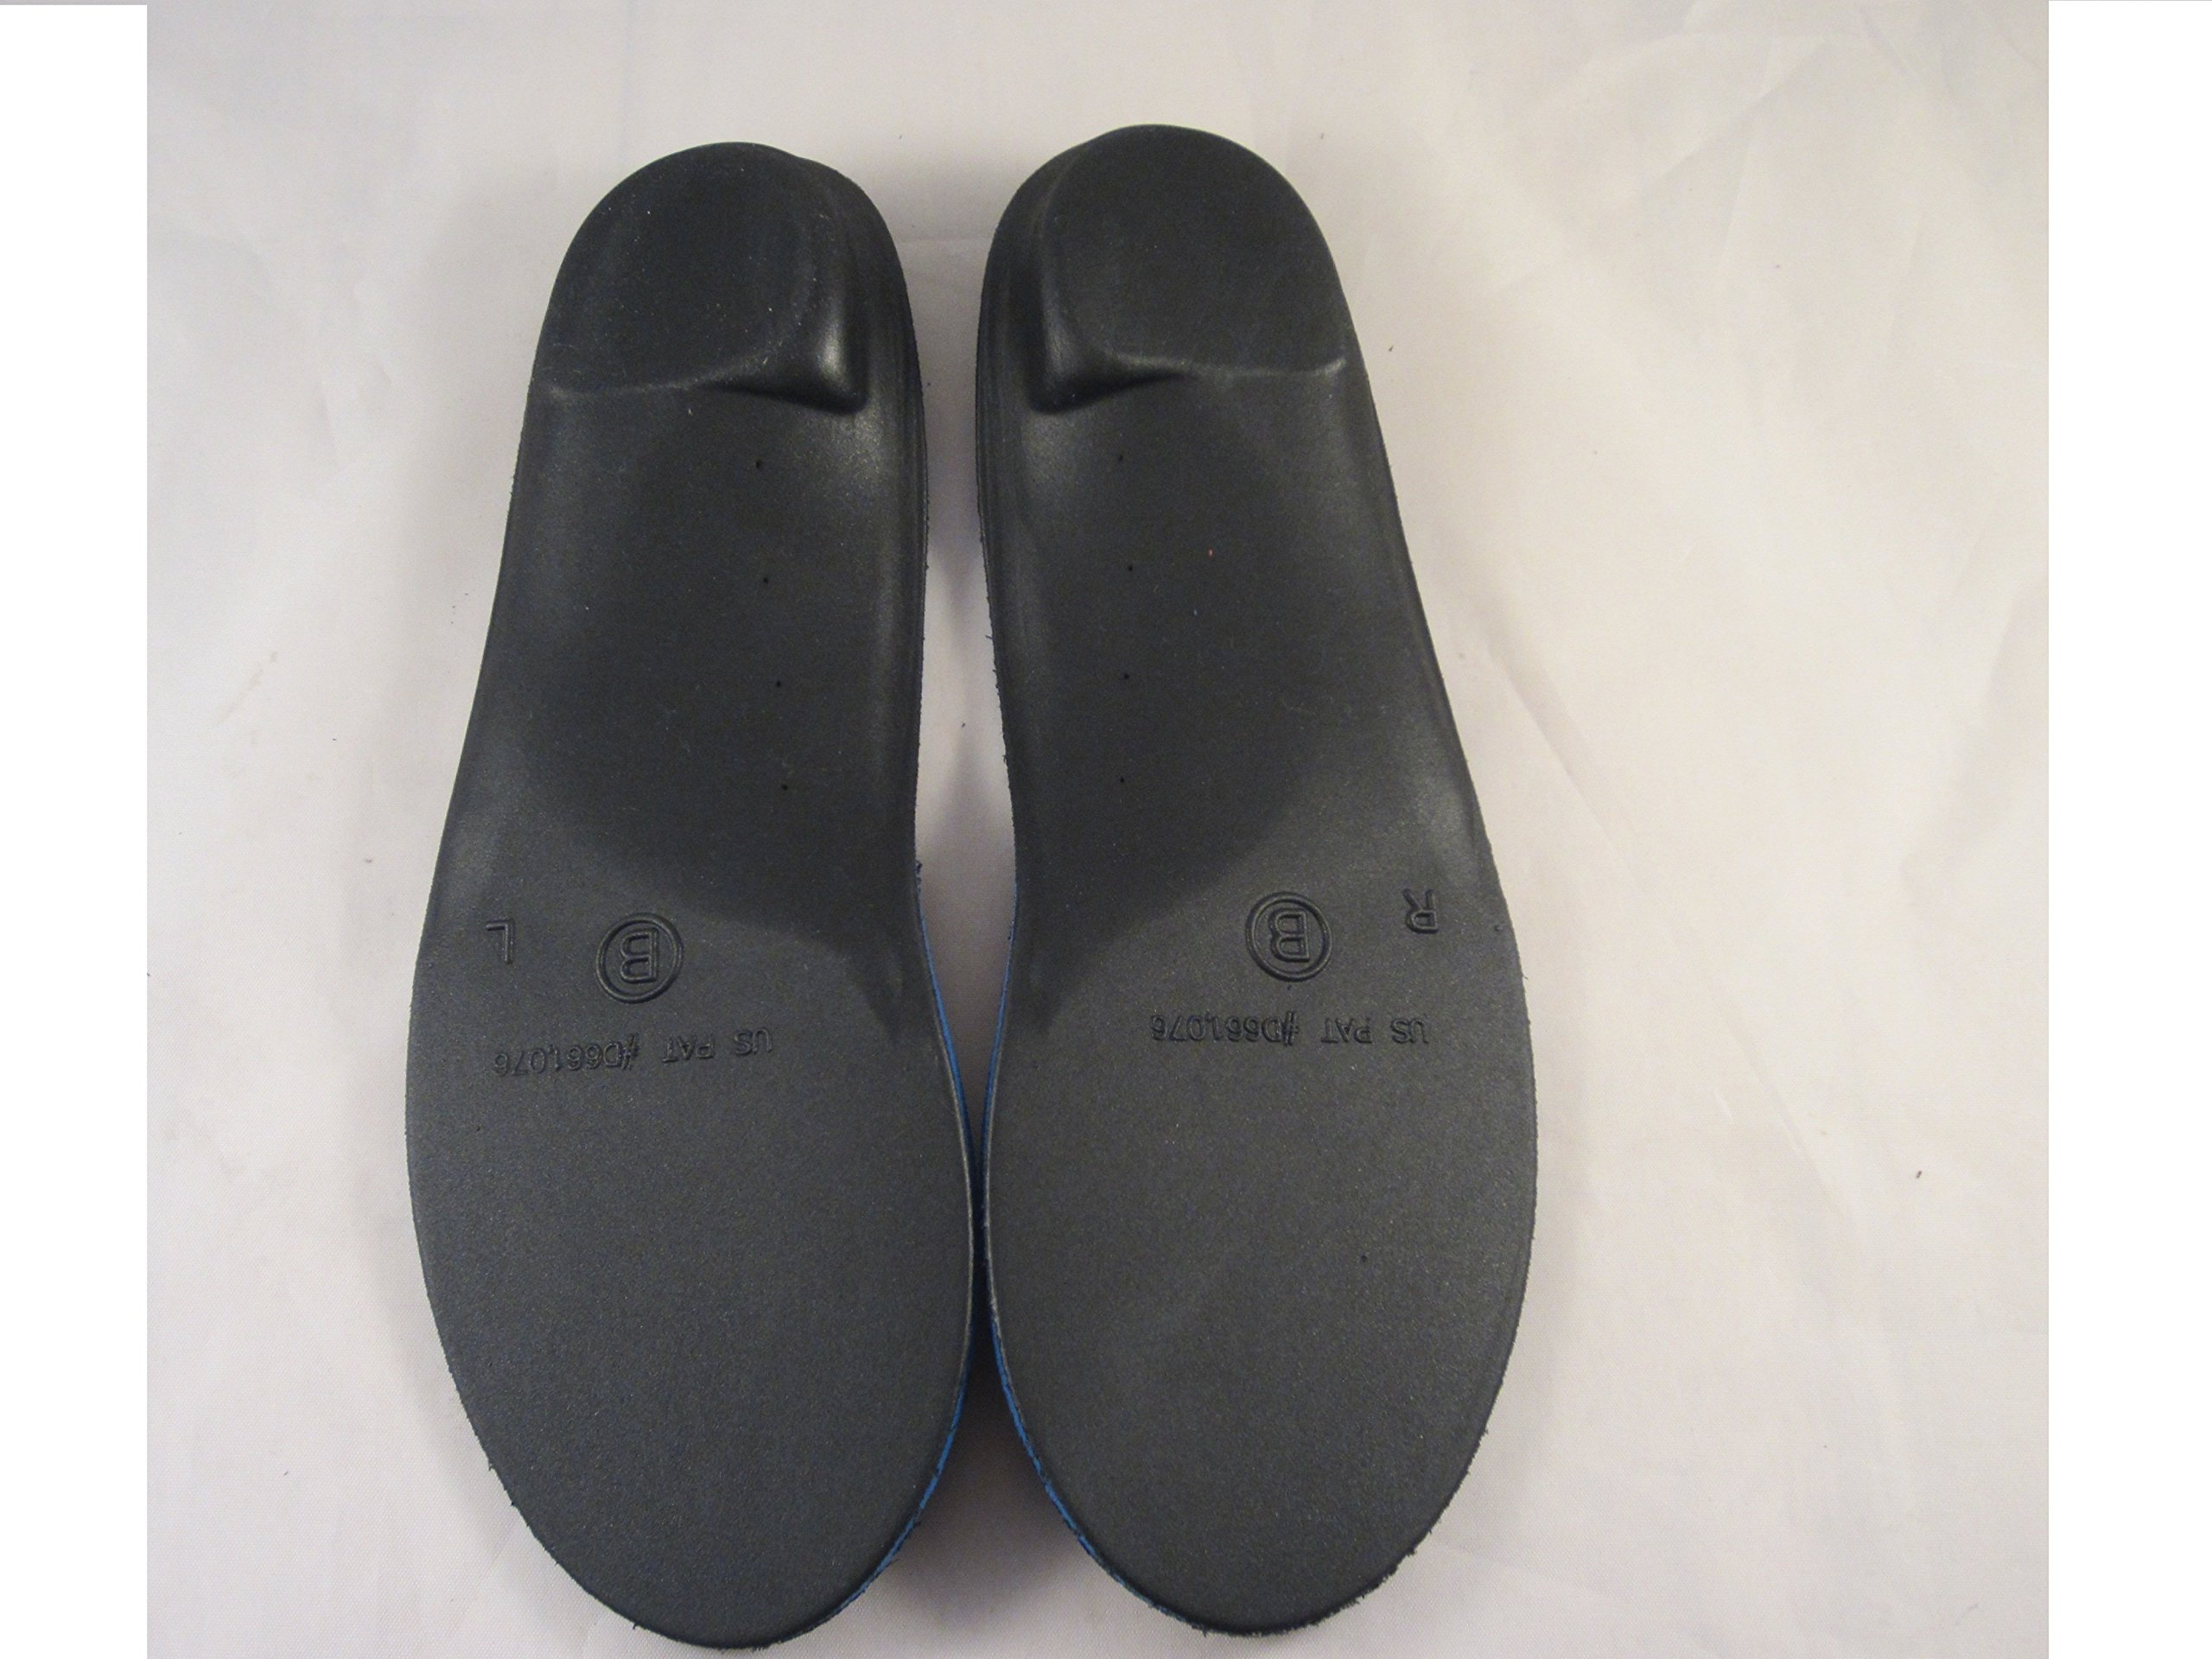 POWERSTEP PROTECH Control Full Length Orthotic Supports Mens & Women's (Men's 12-13.5/Women's 14-15.5)